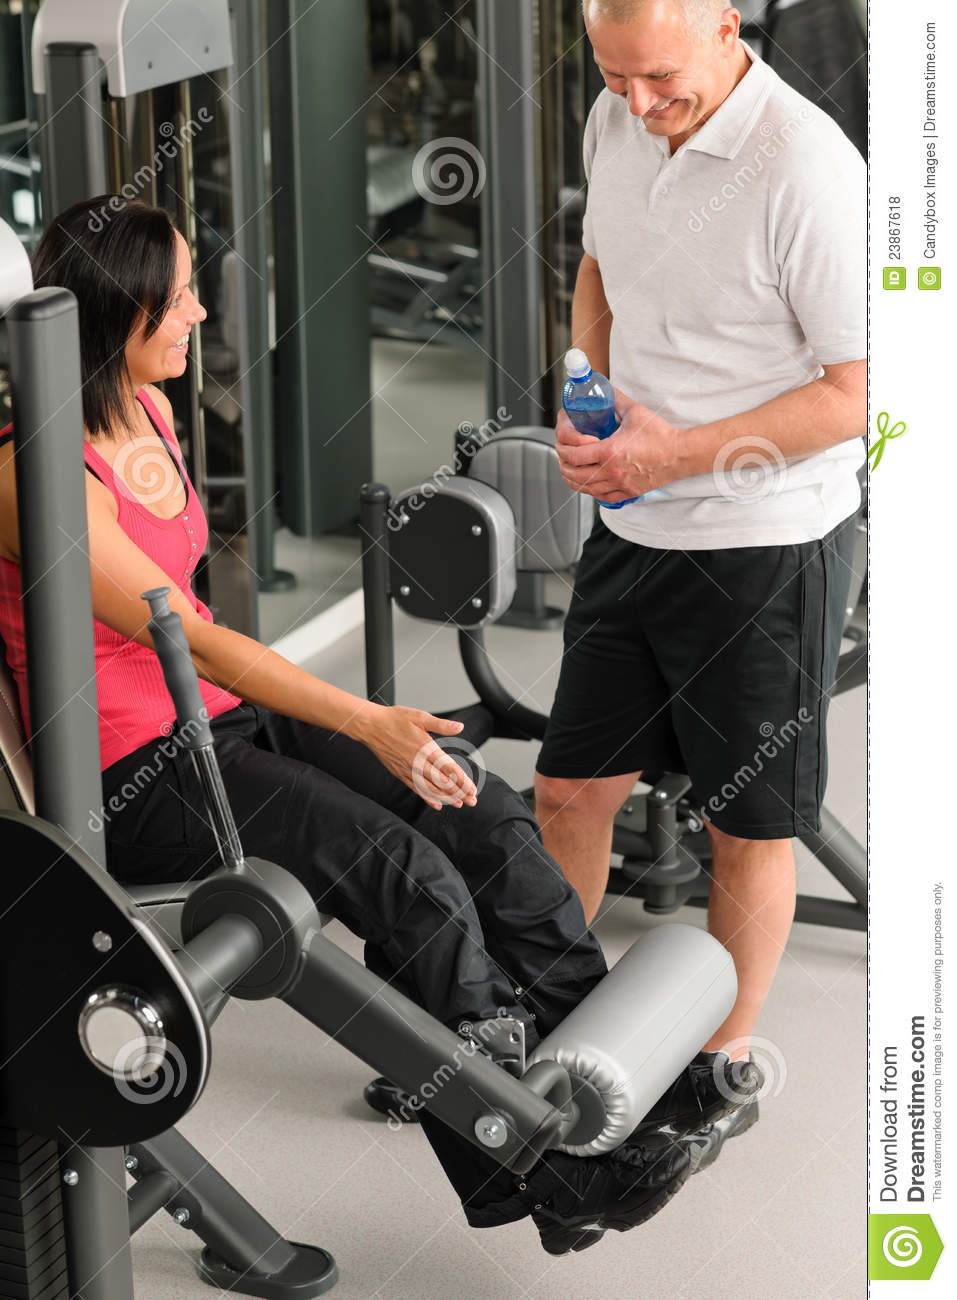 how to buy a gym pass at goodlife